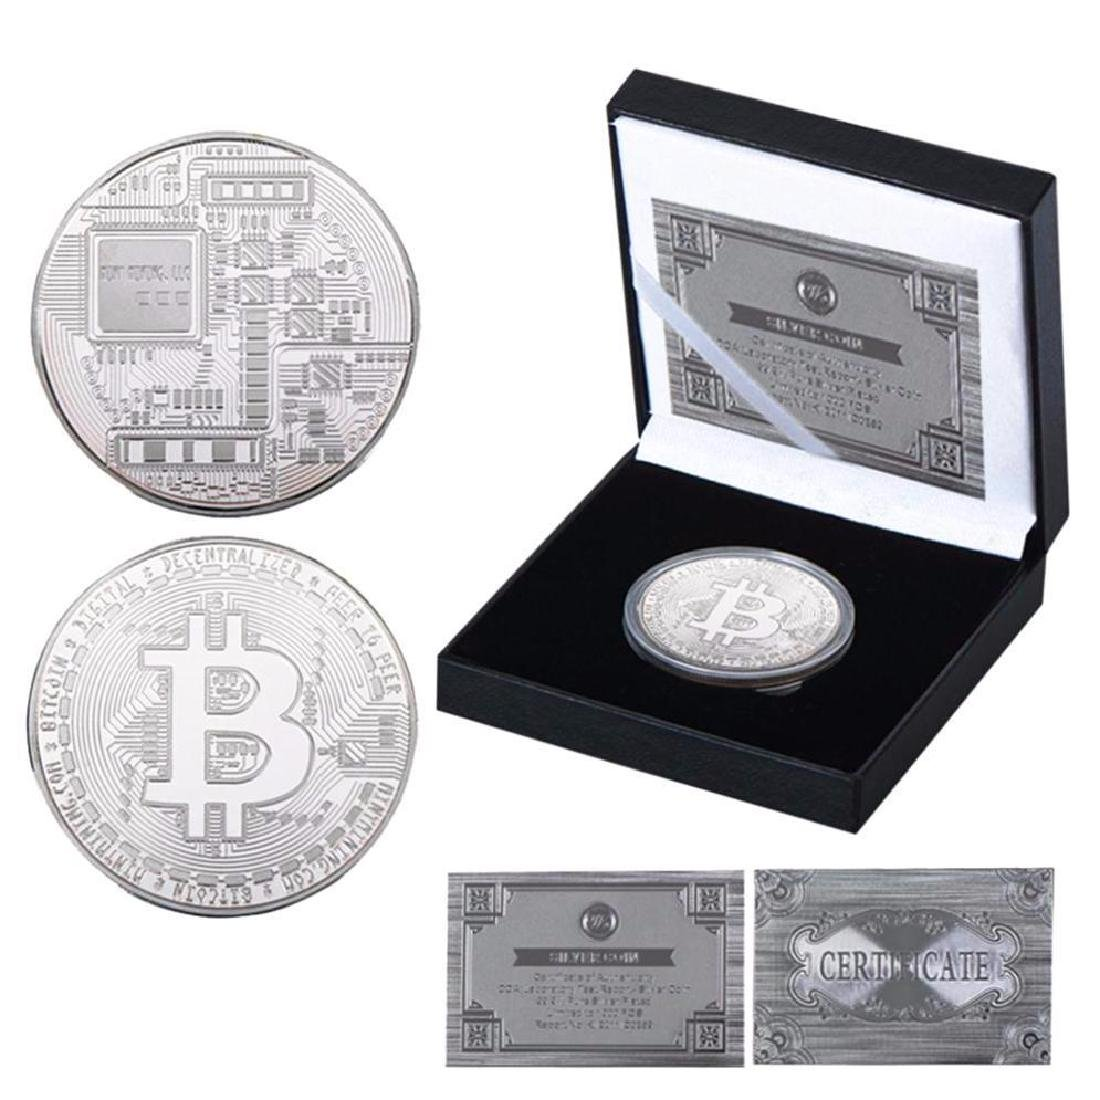 Bitcoin Silver Clad Crypto Coin with COA